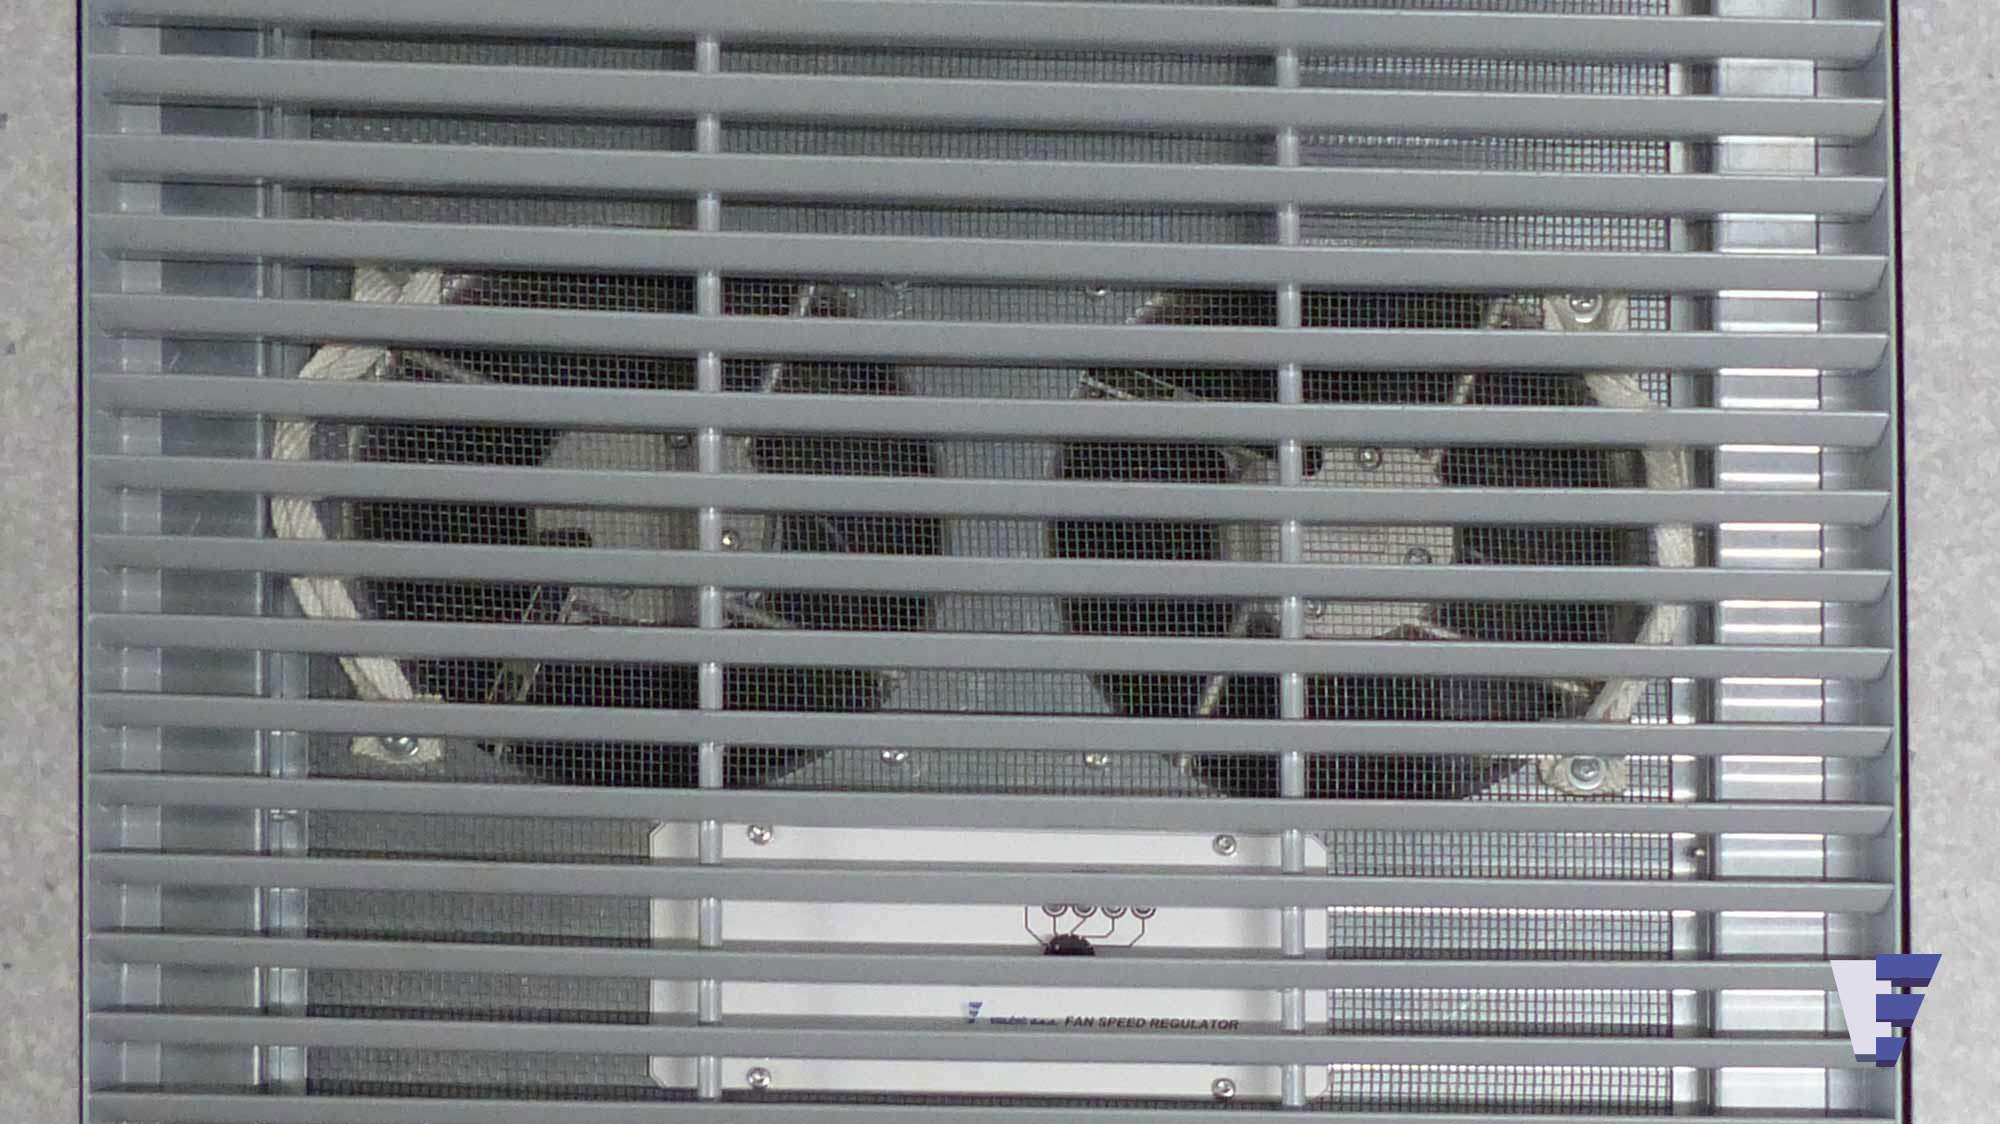 Velčić Ltd - Floor fan unit - server room that are far from the central air conditioner